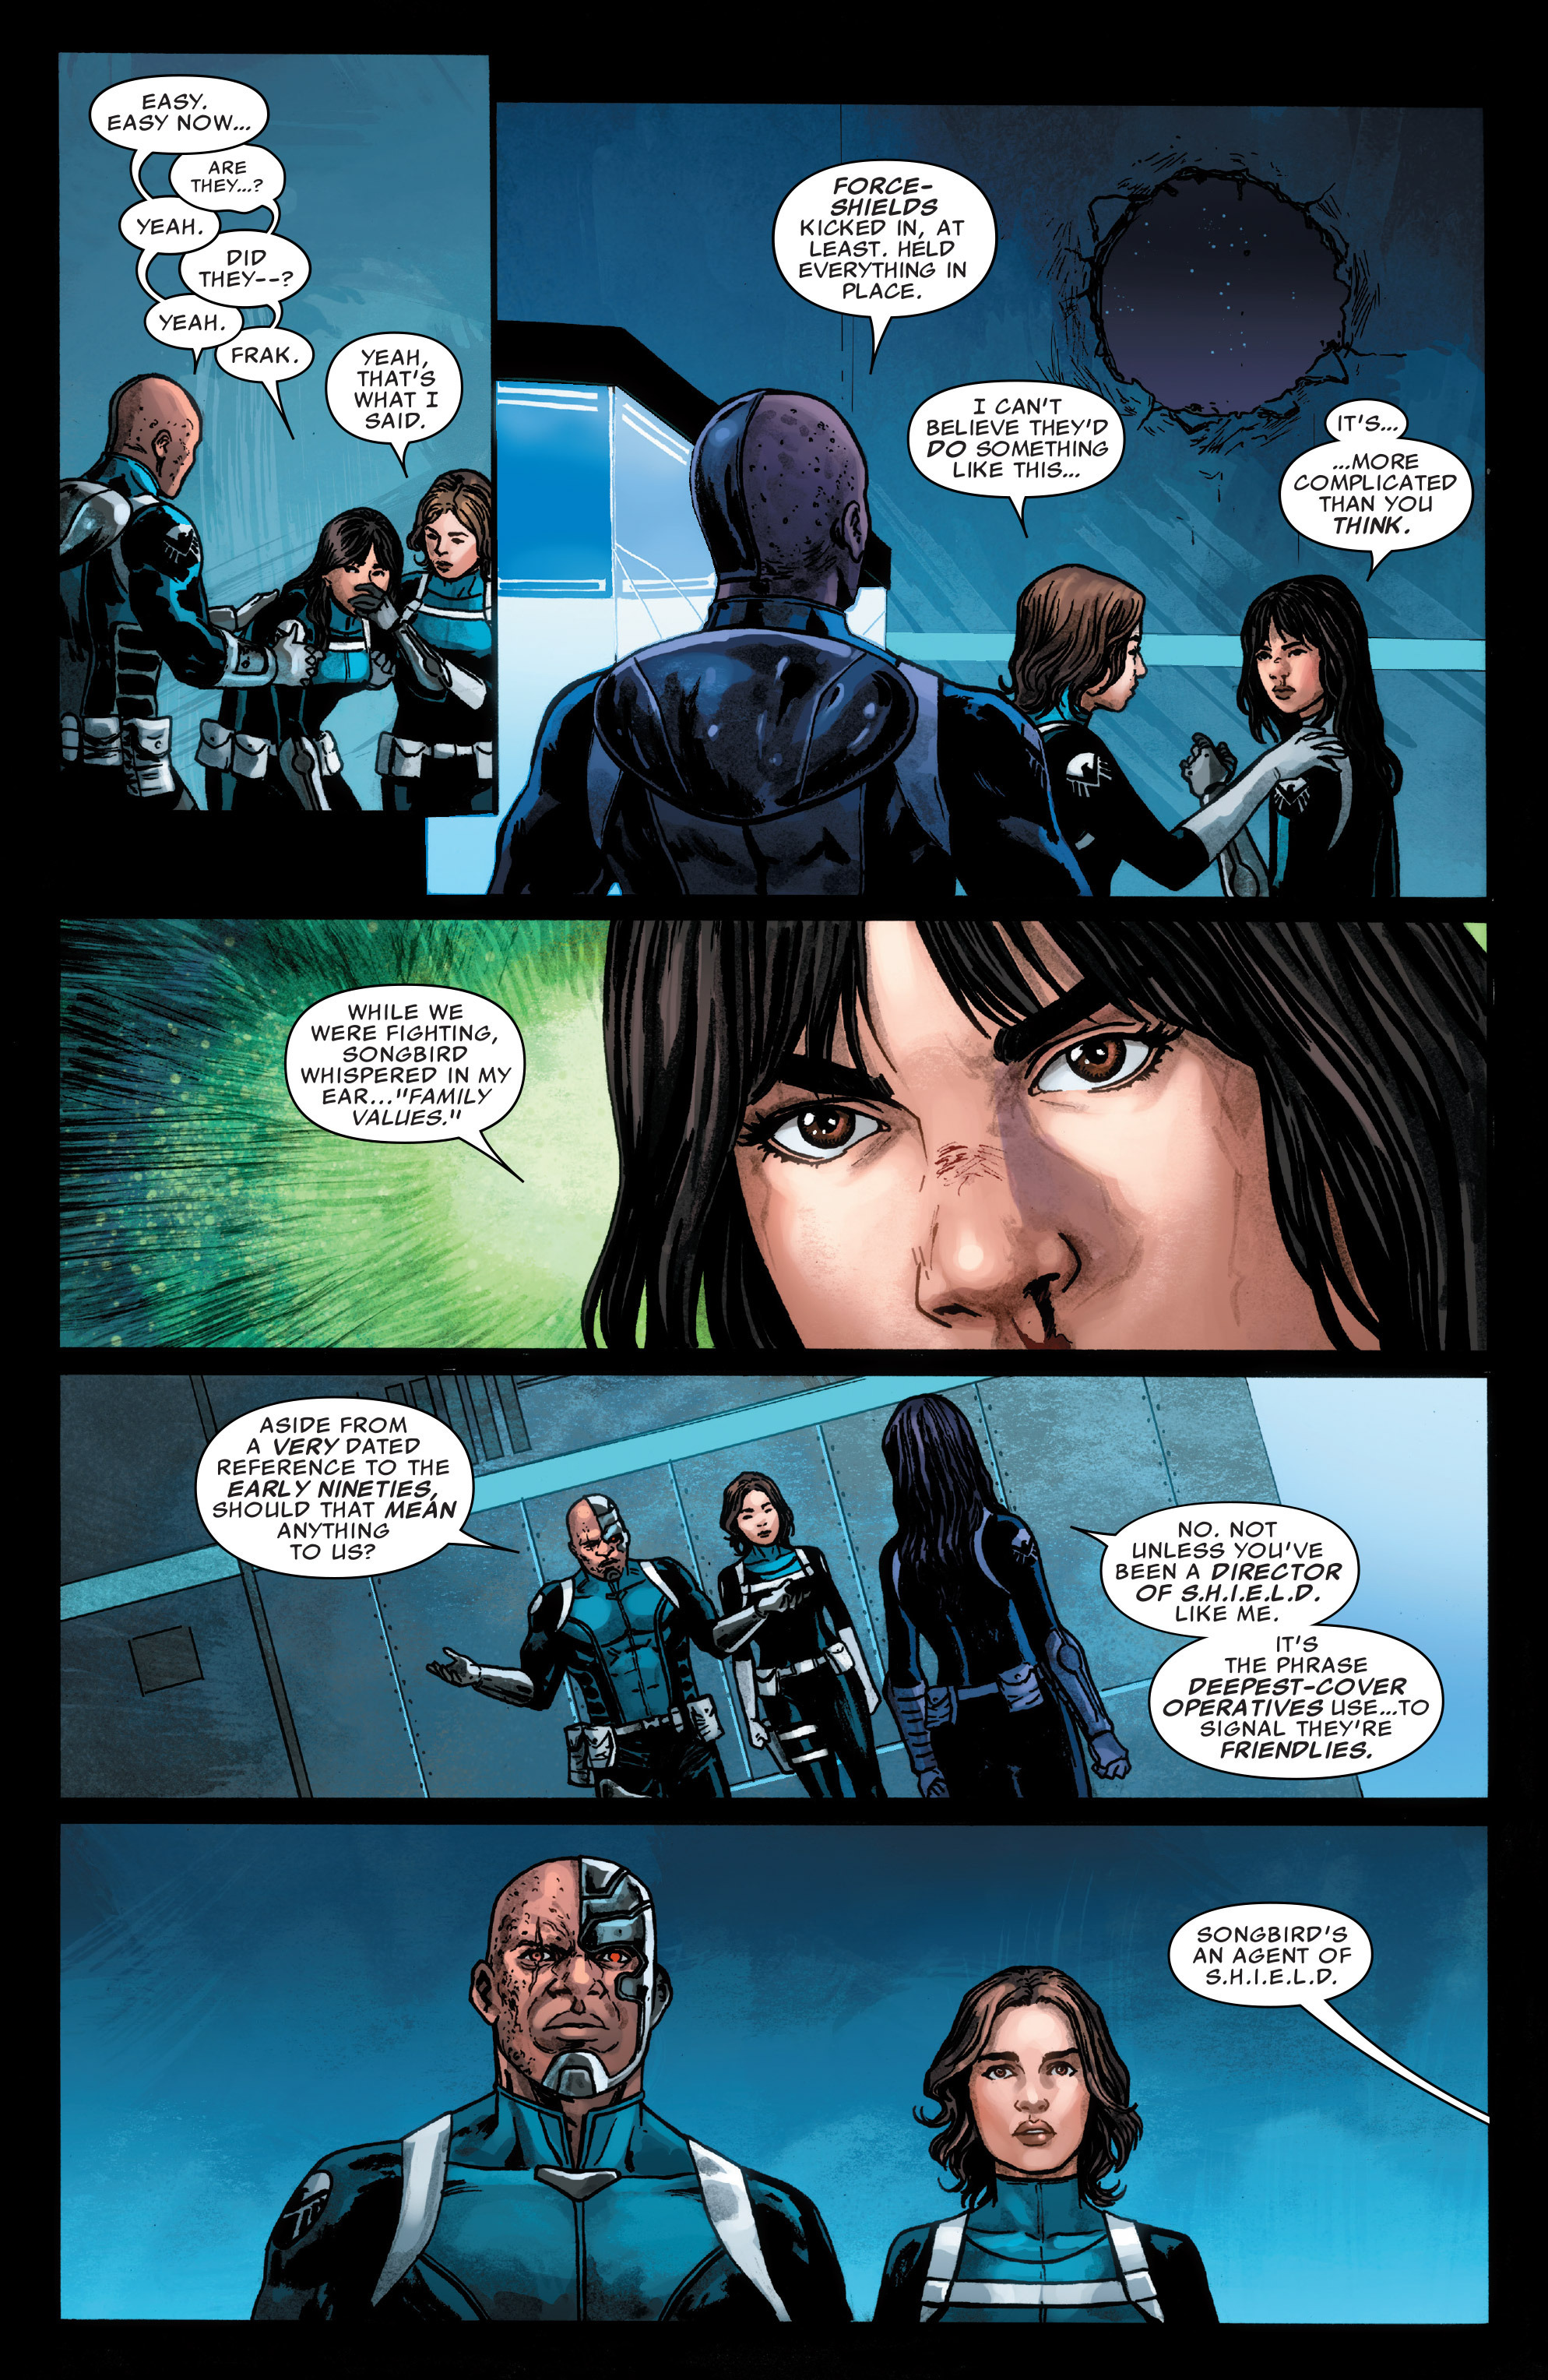 Read online Agents of S.H.I.E.L.D. comic -  Issue #4 - 18